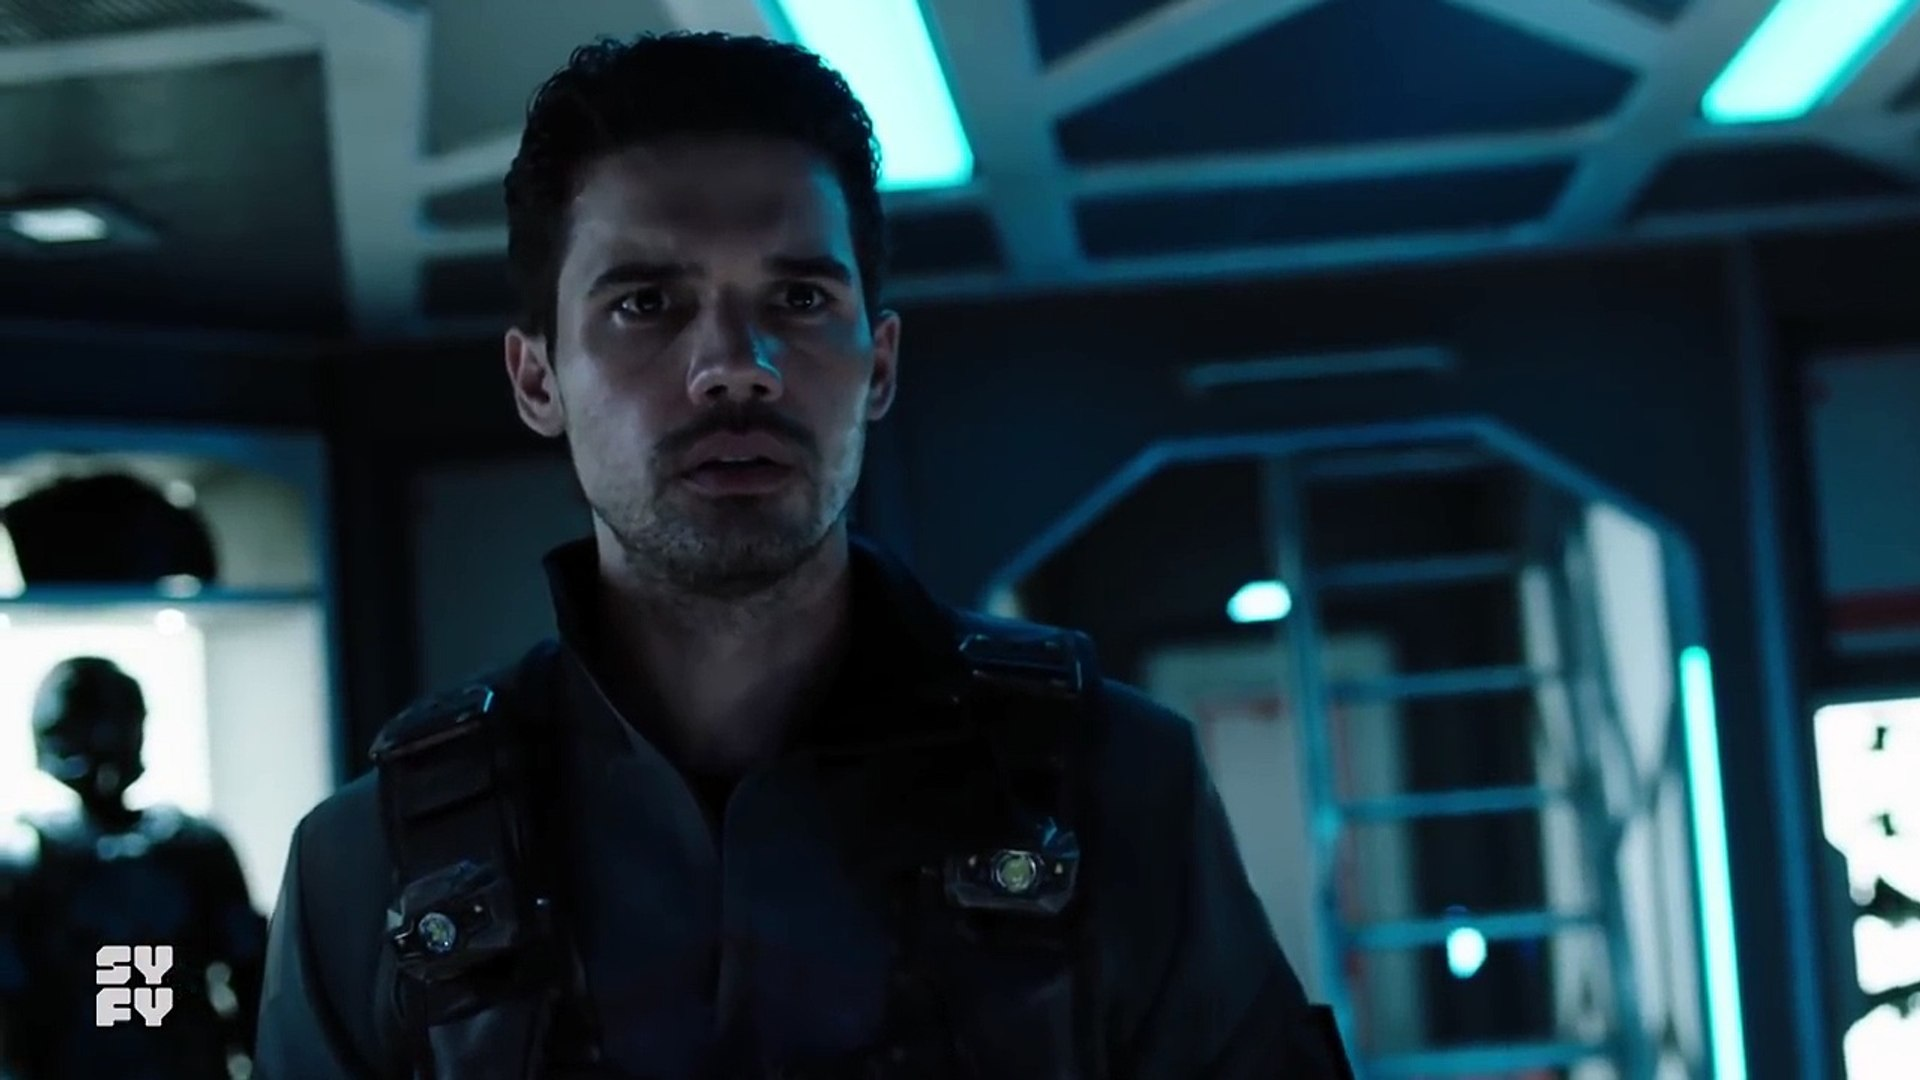 The Expanse Season 3 premiere date, Wednesday April 11th on Syfy - video clip (HD)